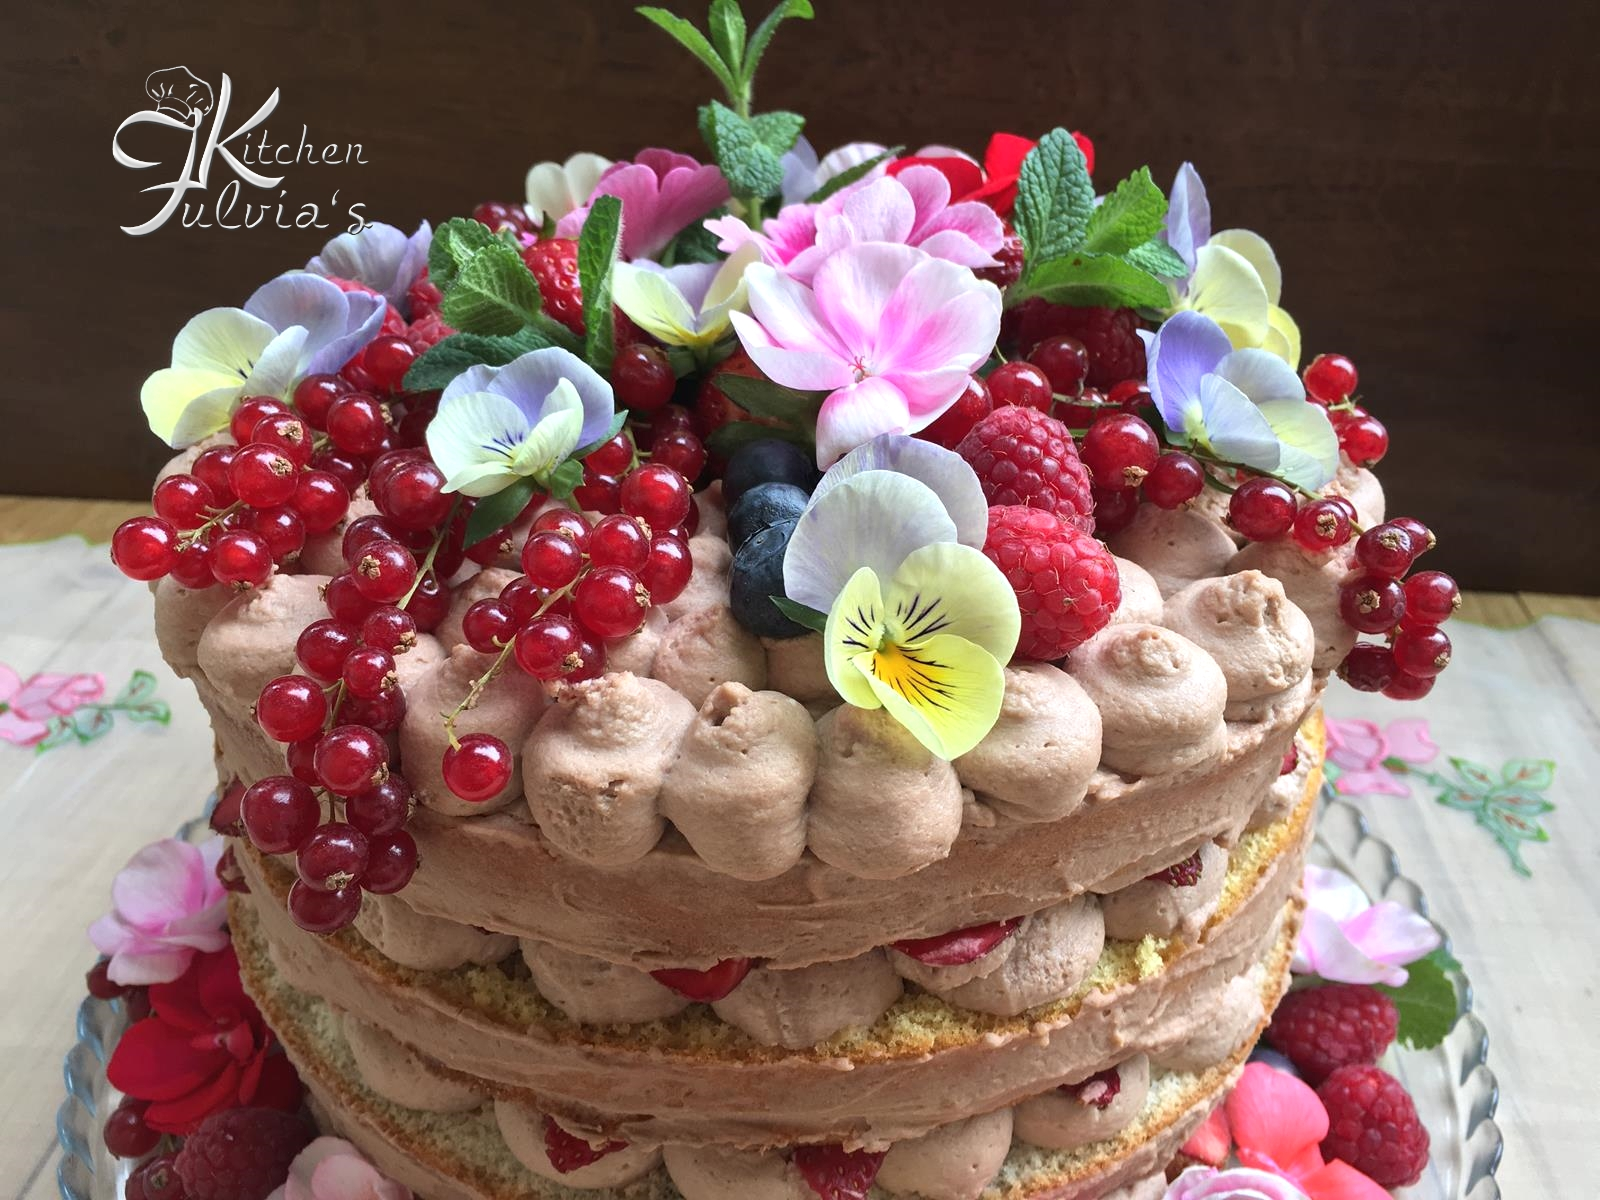 Bagna Per Torta Alle Fragole Naked Cake Torta Nuda Alle Fragole Fulvia 39s Kitchen